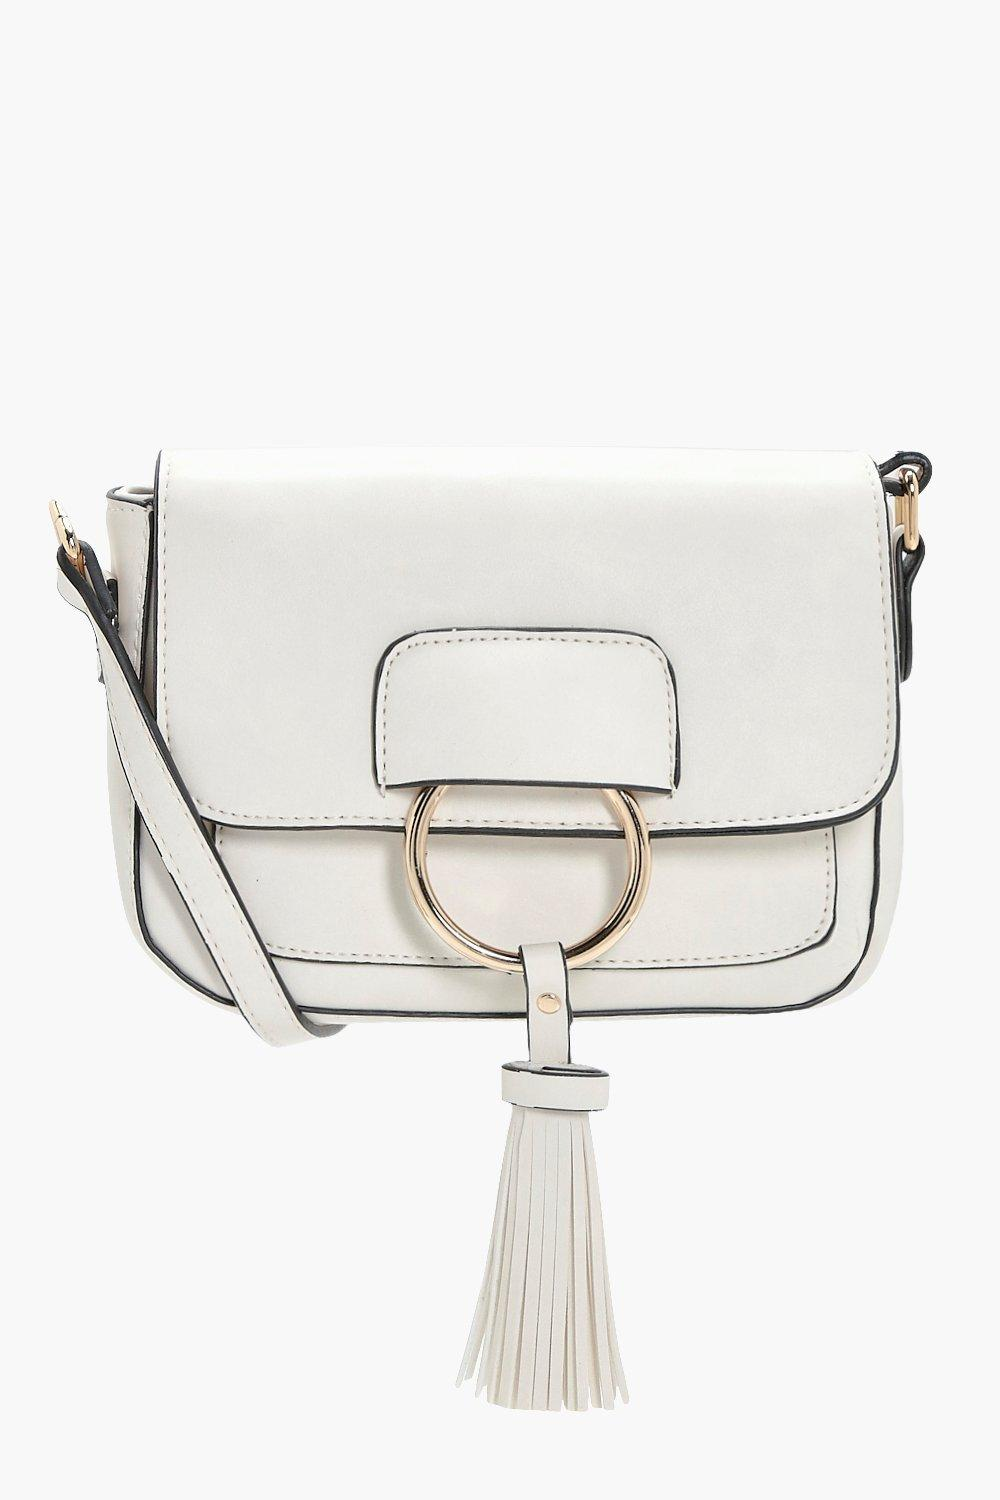 Ring And Tassel Cross Body - cream - Abigail Ring